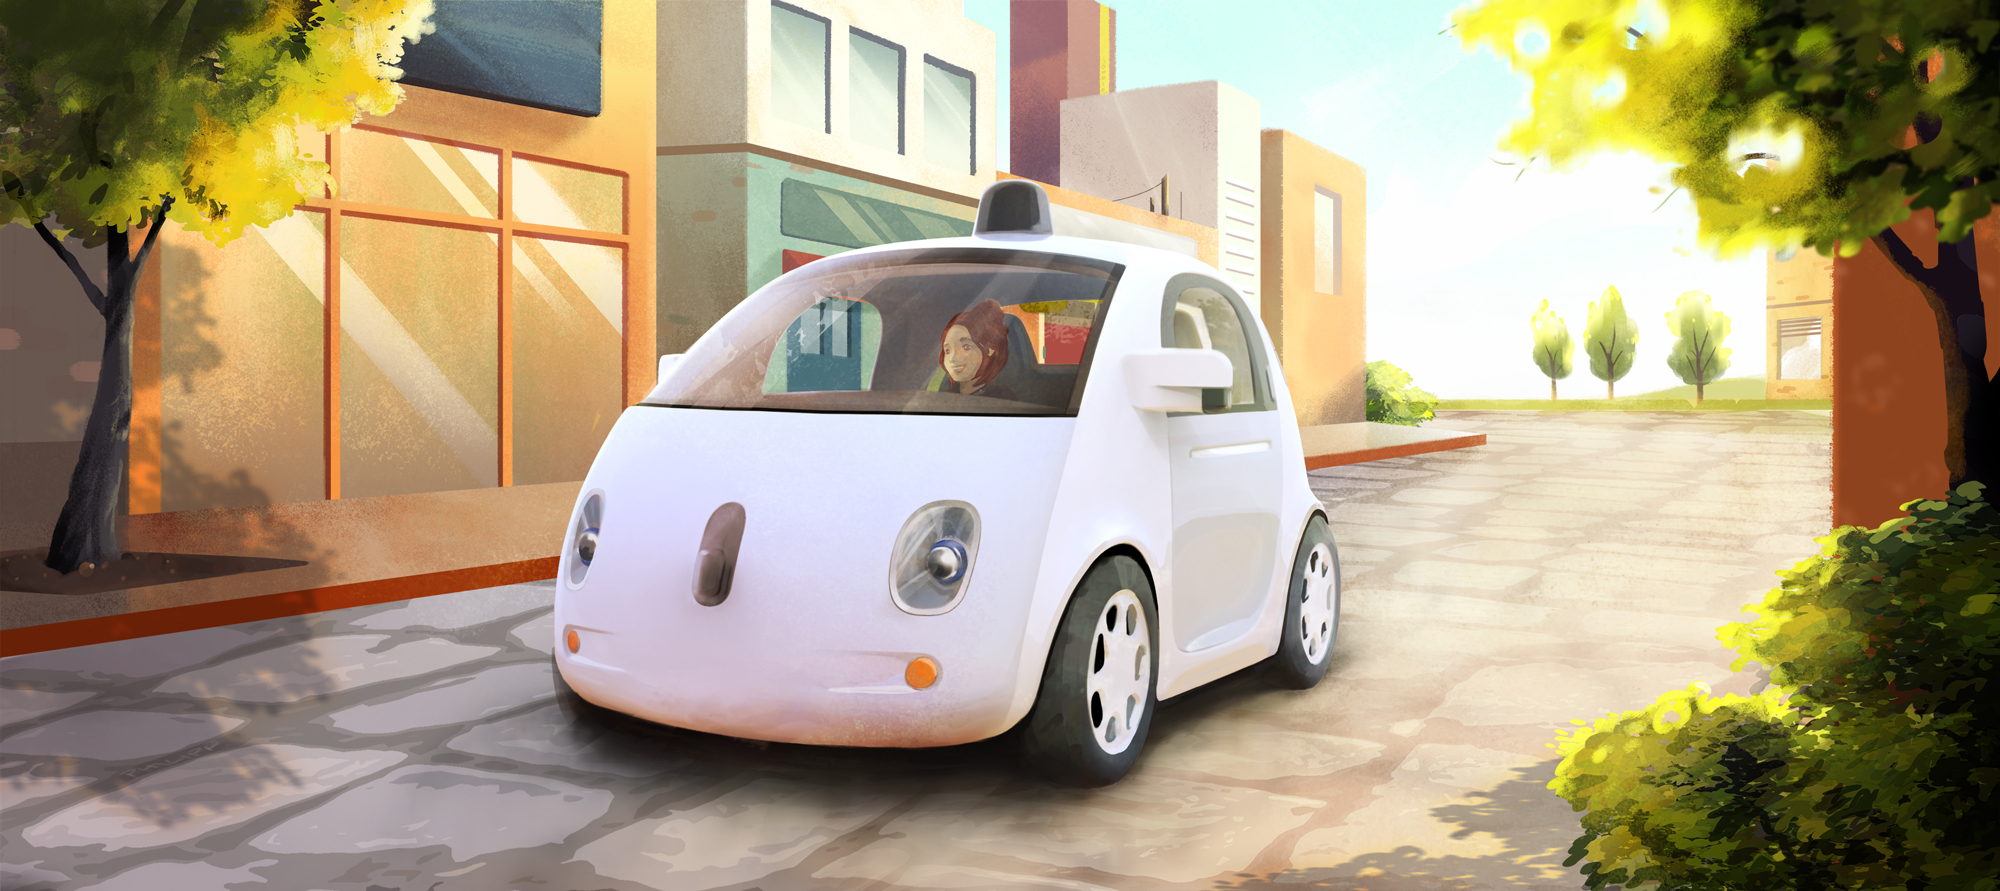 Google may be partnering with Ford to accelerate its autonomous car ambitions